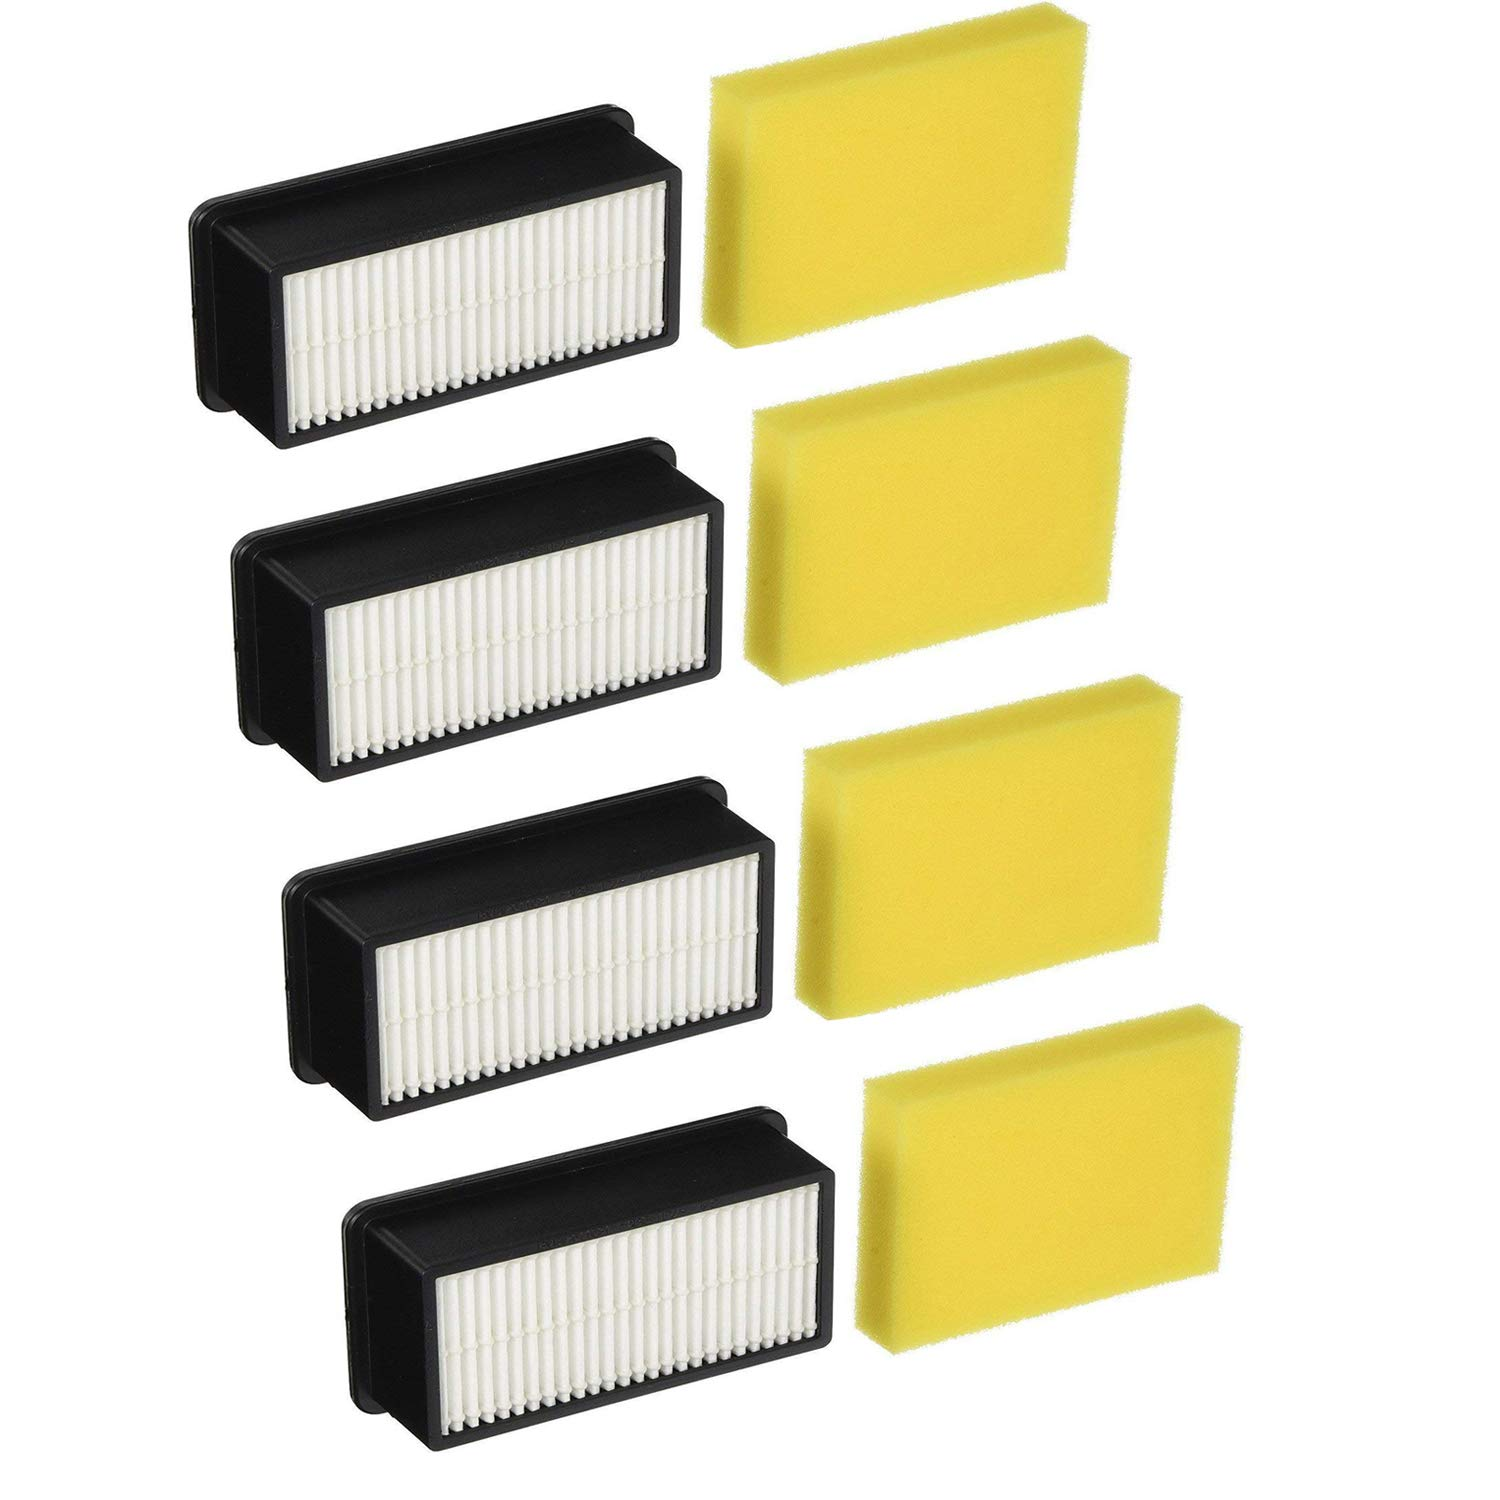 Gotty 4 Pack 1008 Pre & Post Motor Replacement Filter Kit for Bissell CleanView Upright Vacuums 9595A, 1819, 1822, 1825, 1831, 1330, 1332. 4 Pre-Motor Foam Filter and 4 Post-Motor Filter by Gotty